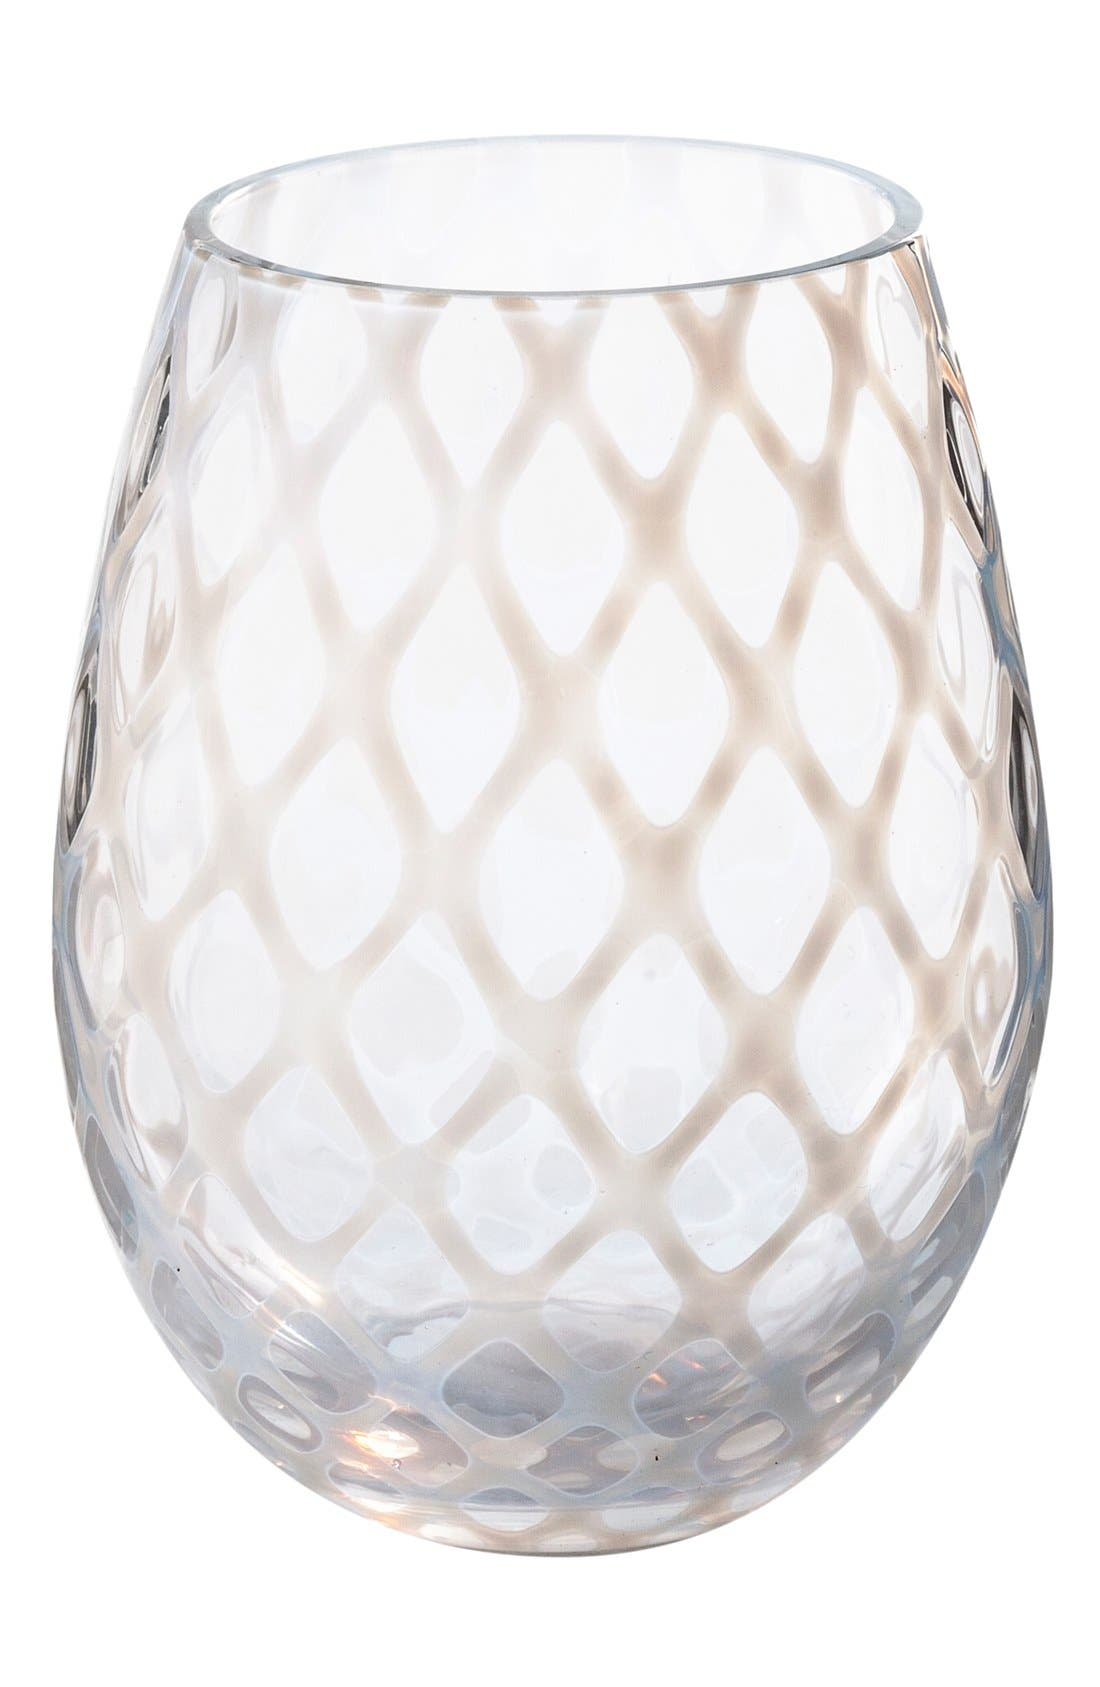 Main Image - Rosanna 'Lattice' Stemless Wine Glasses (Set of 4)